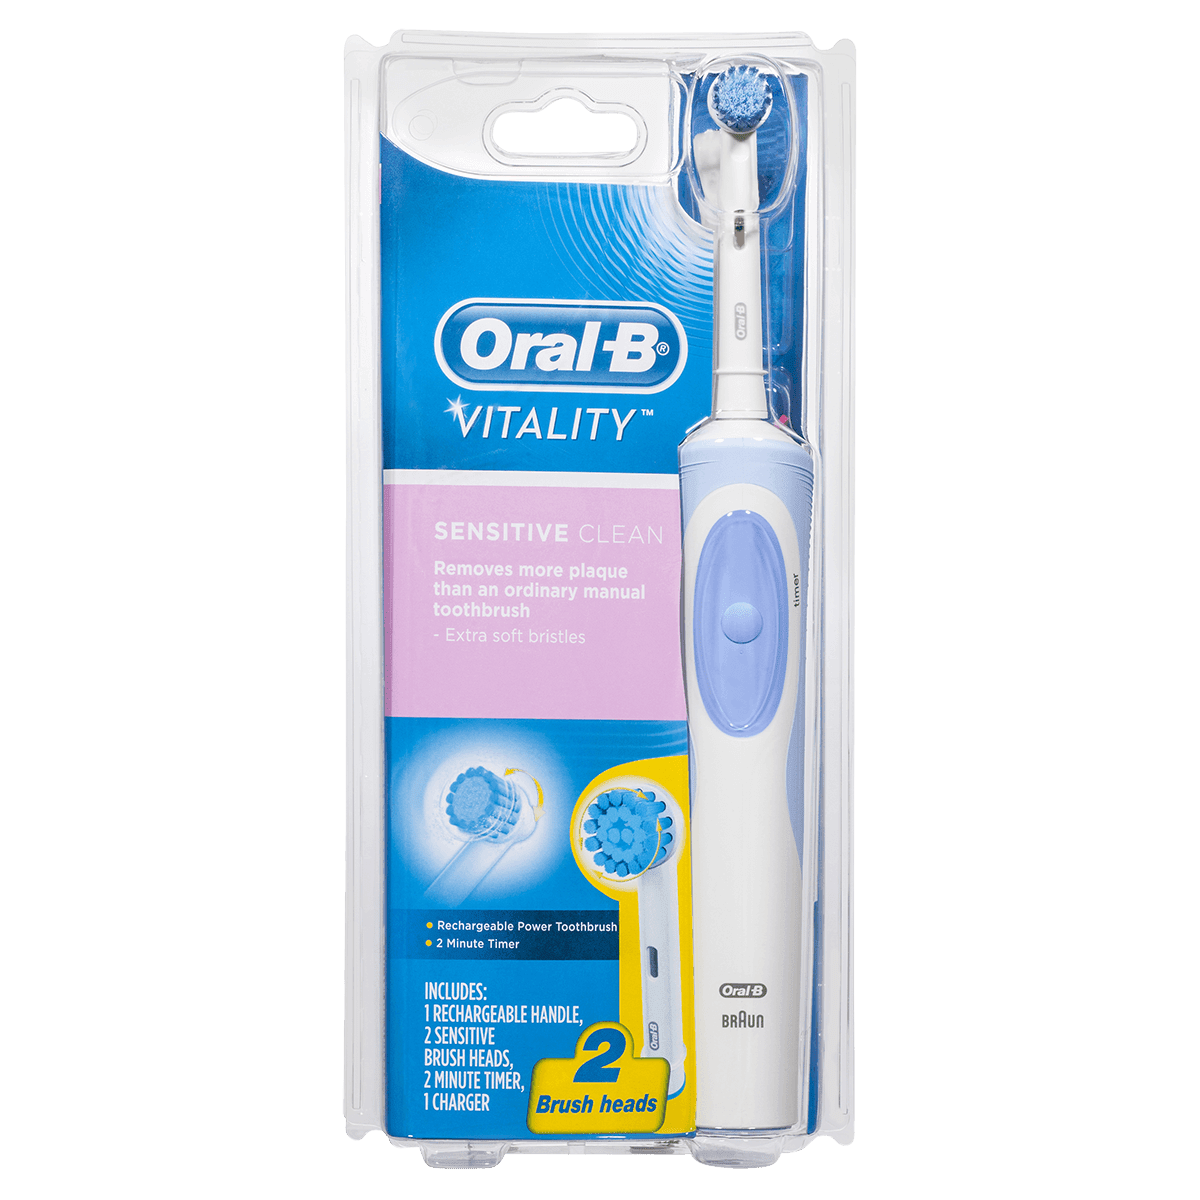 Oral-B Vitality Sensitive Clean Rechargeable Power Toothbrush